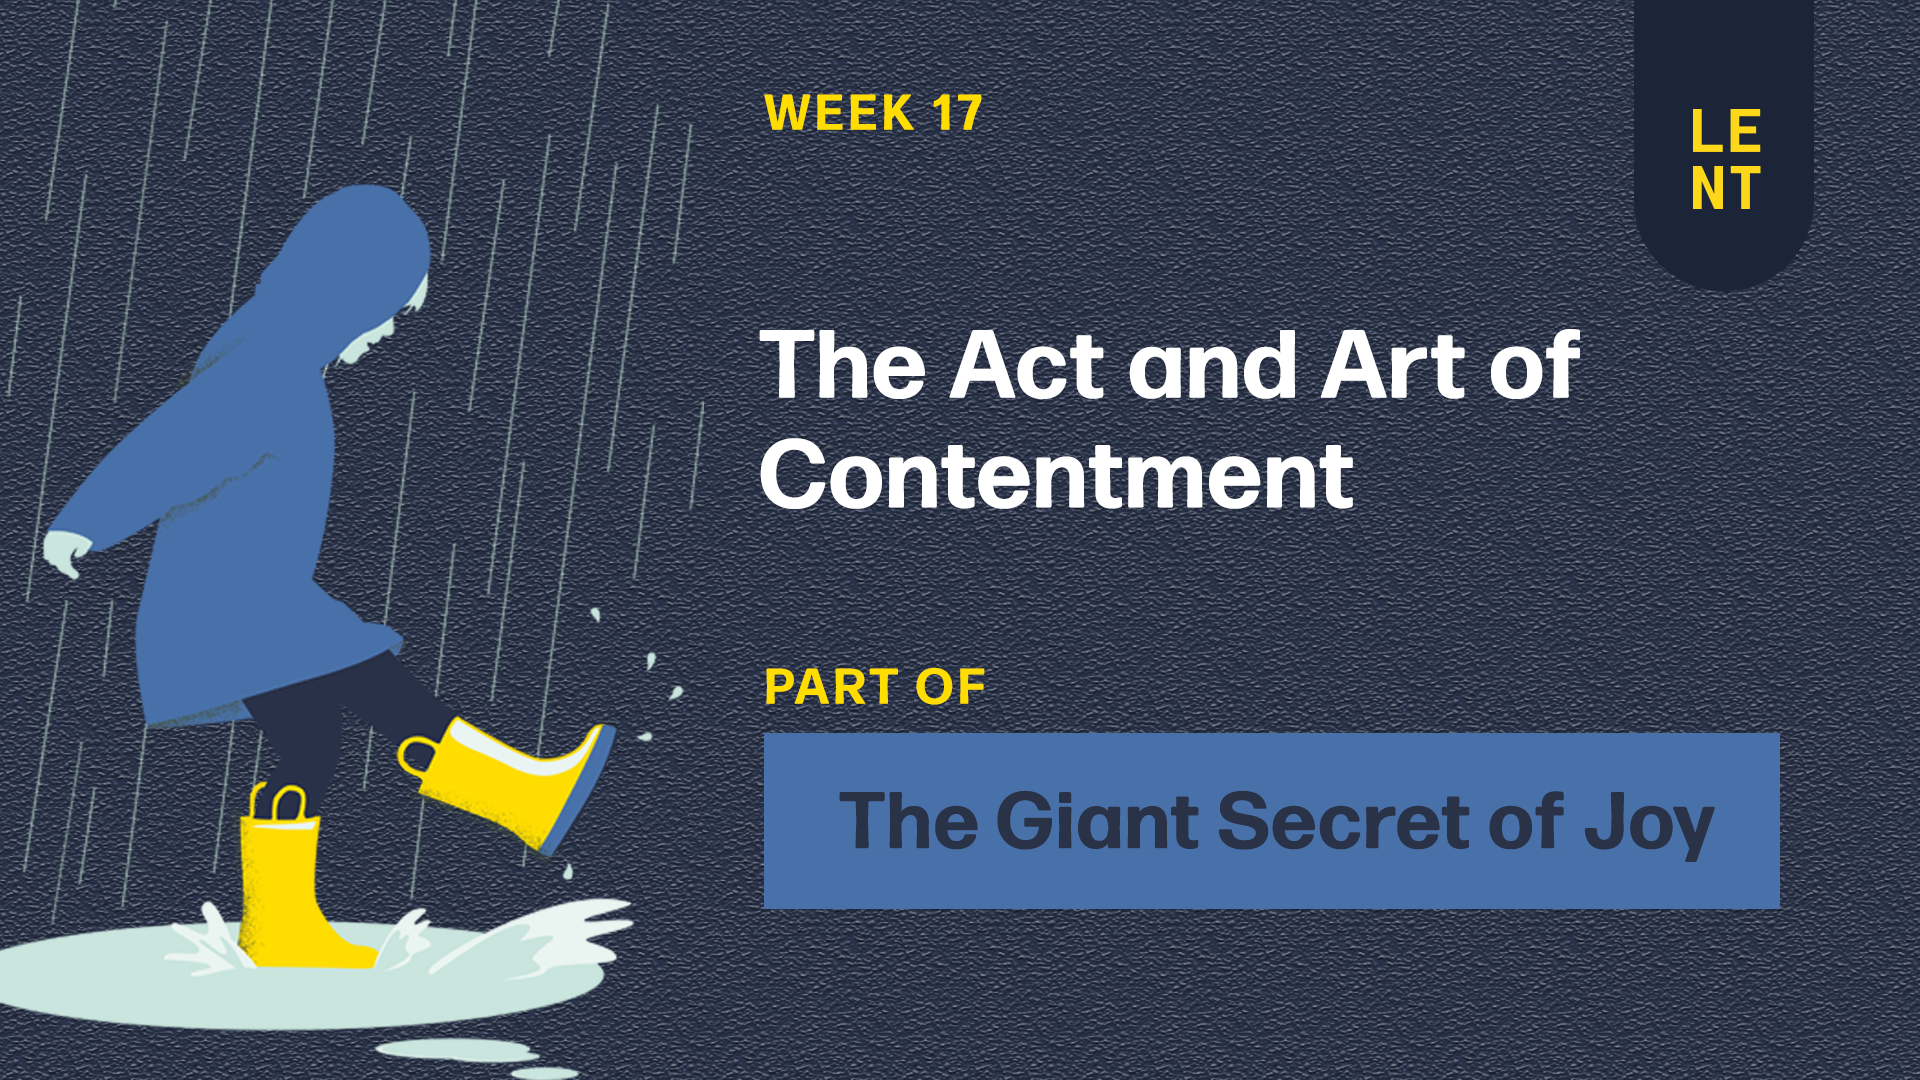 The Act and Art of Contentment